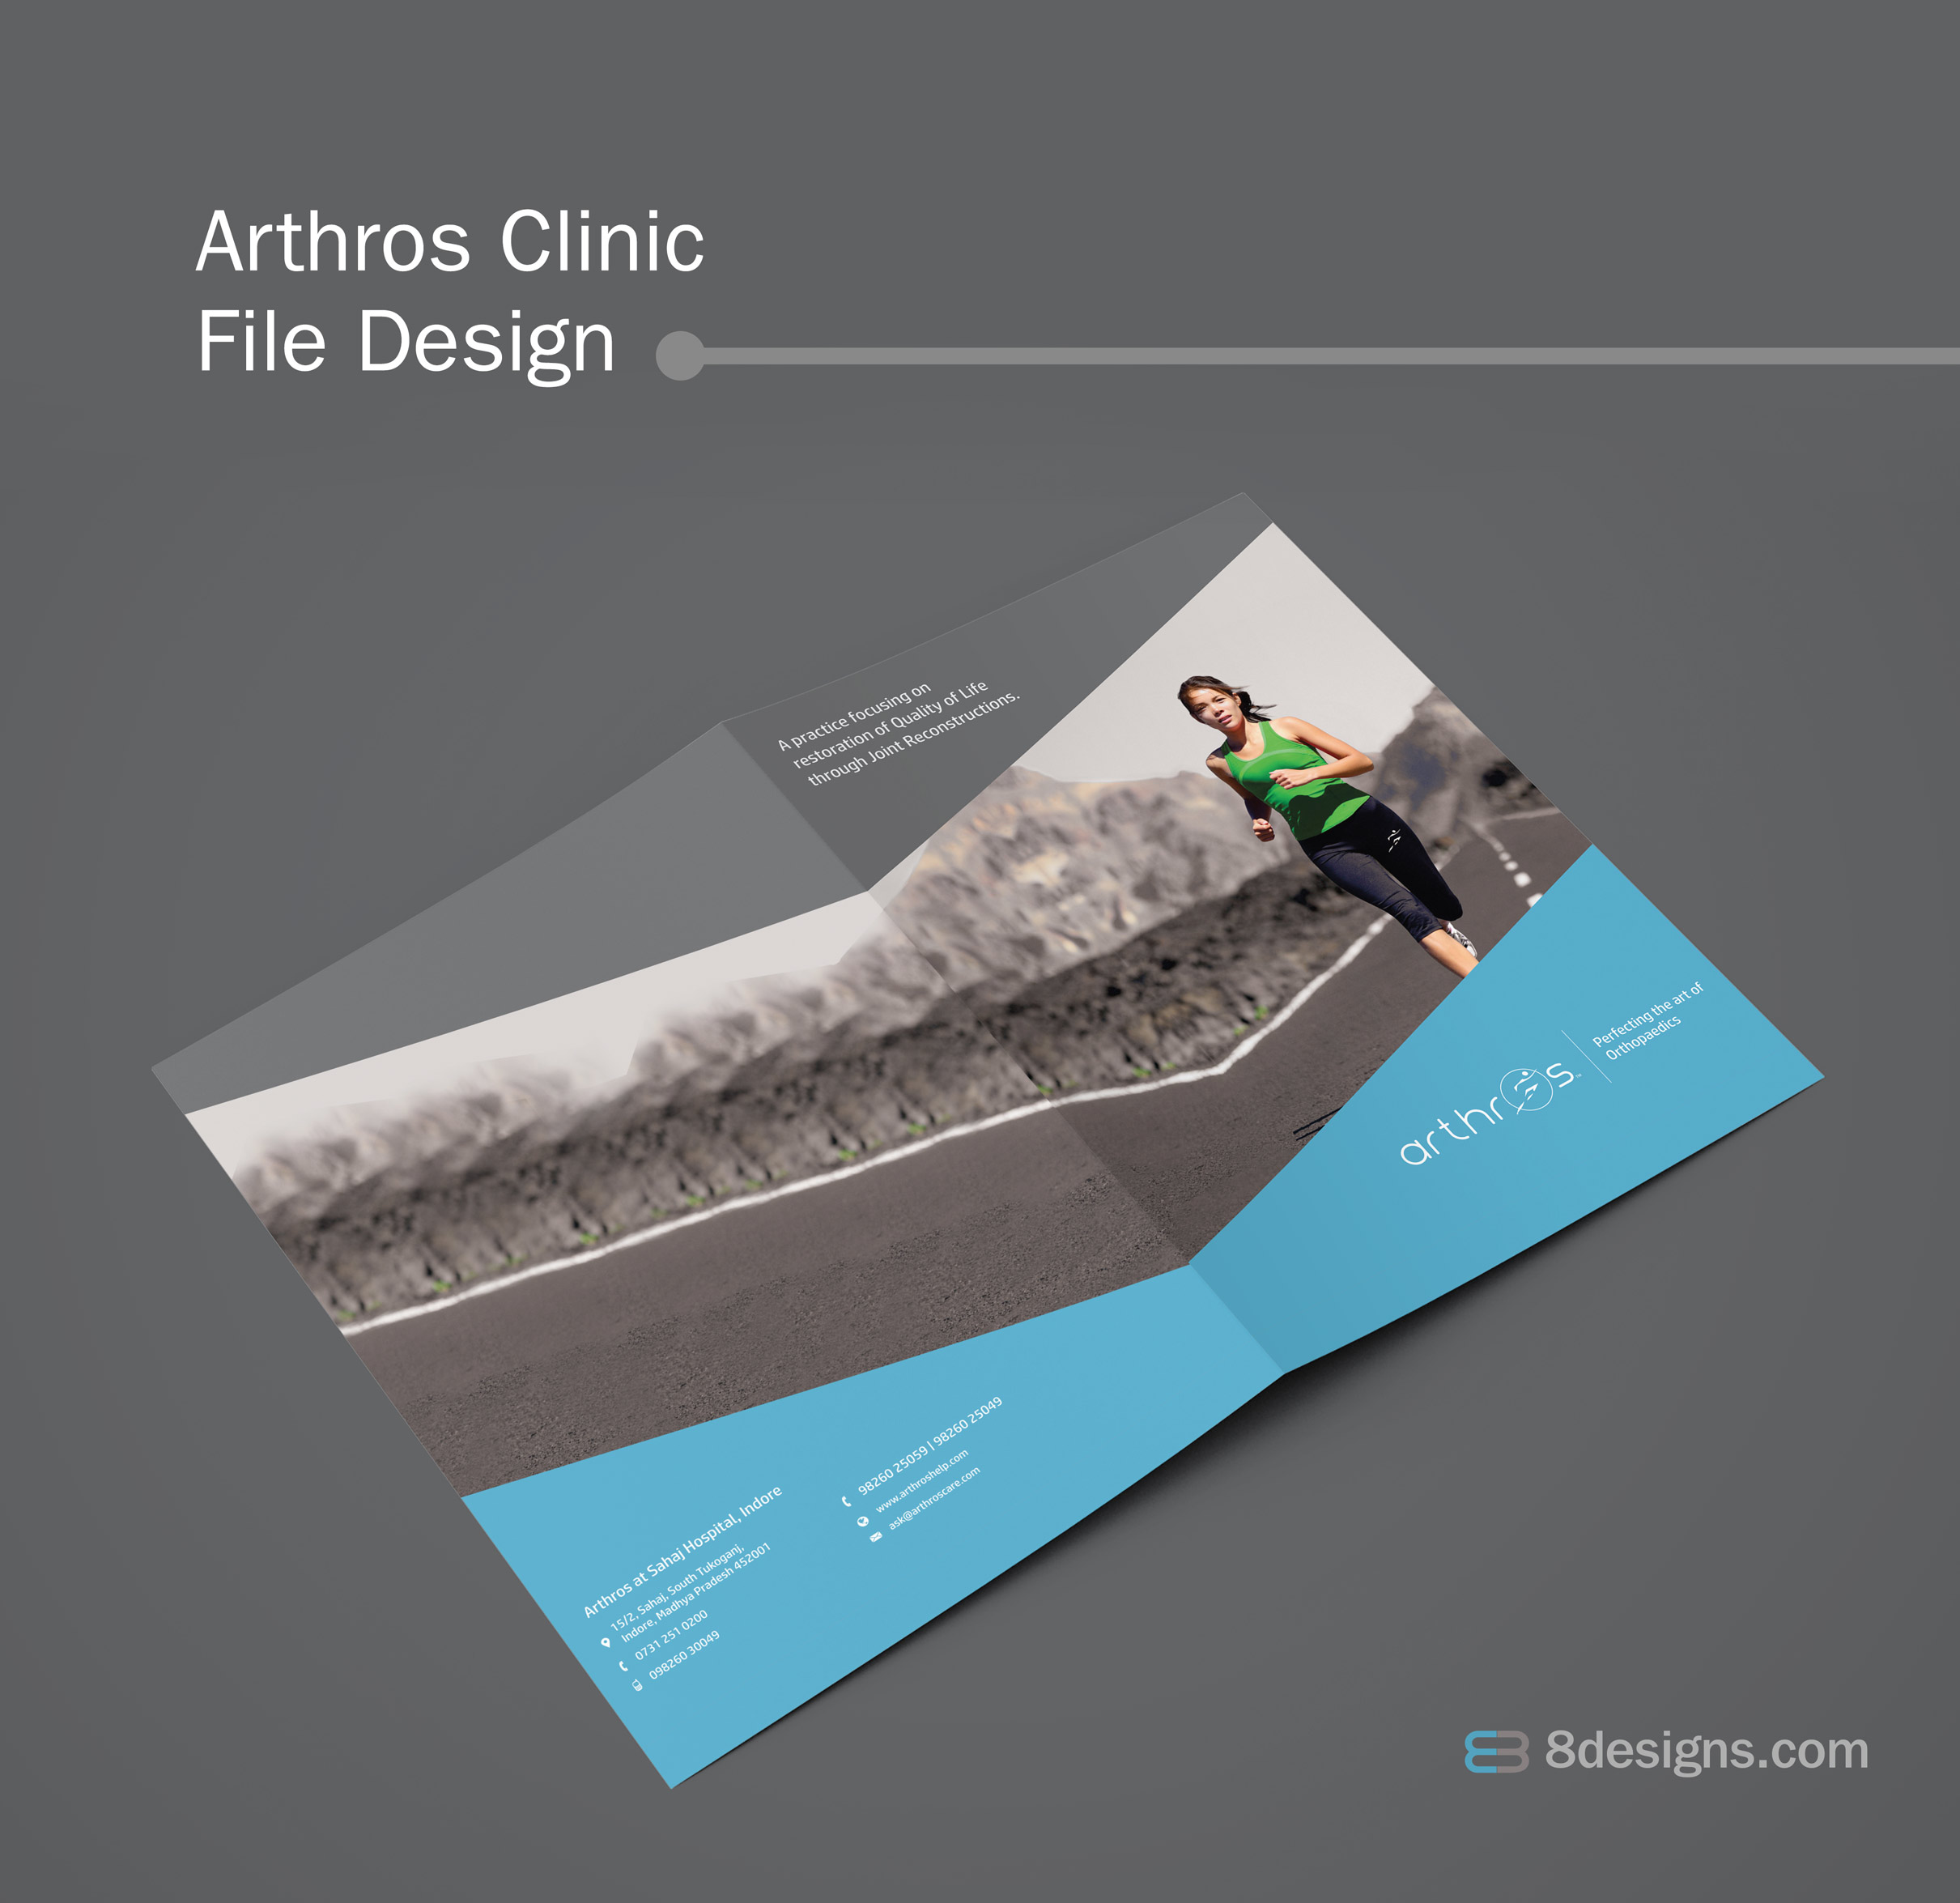 Clinic File Design, Arthroscopy Surgeon File Design